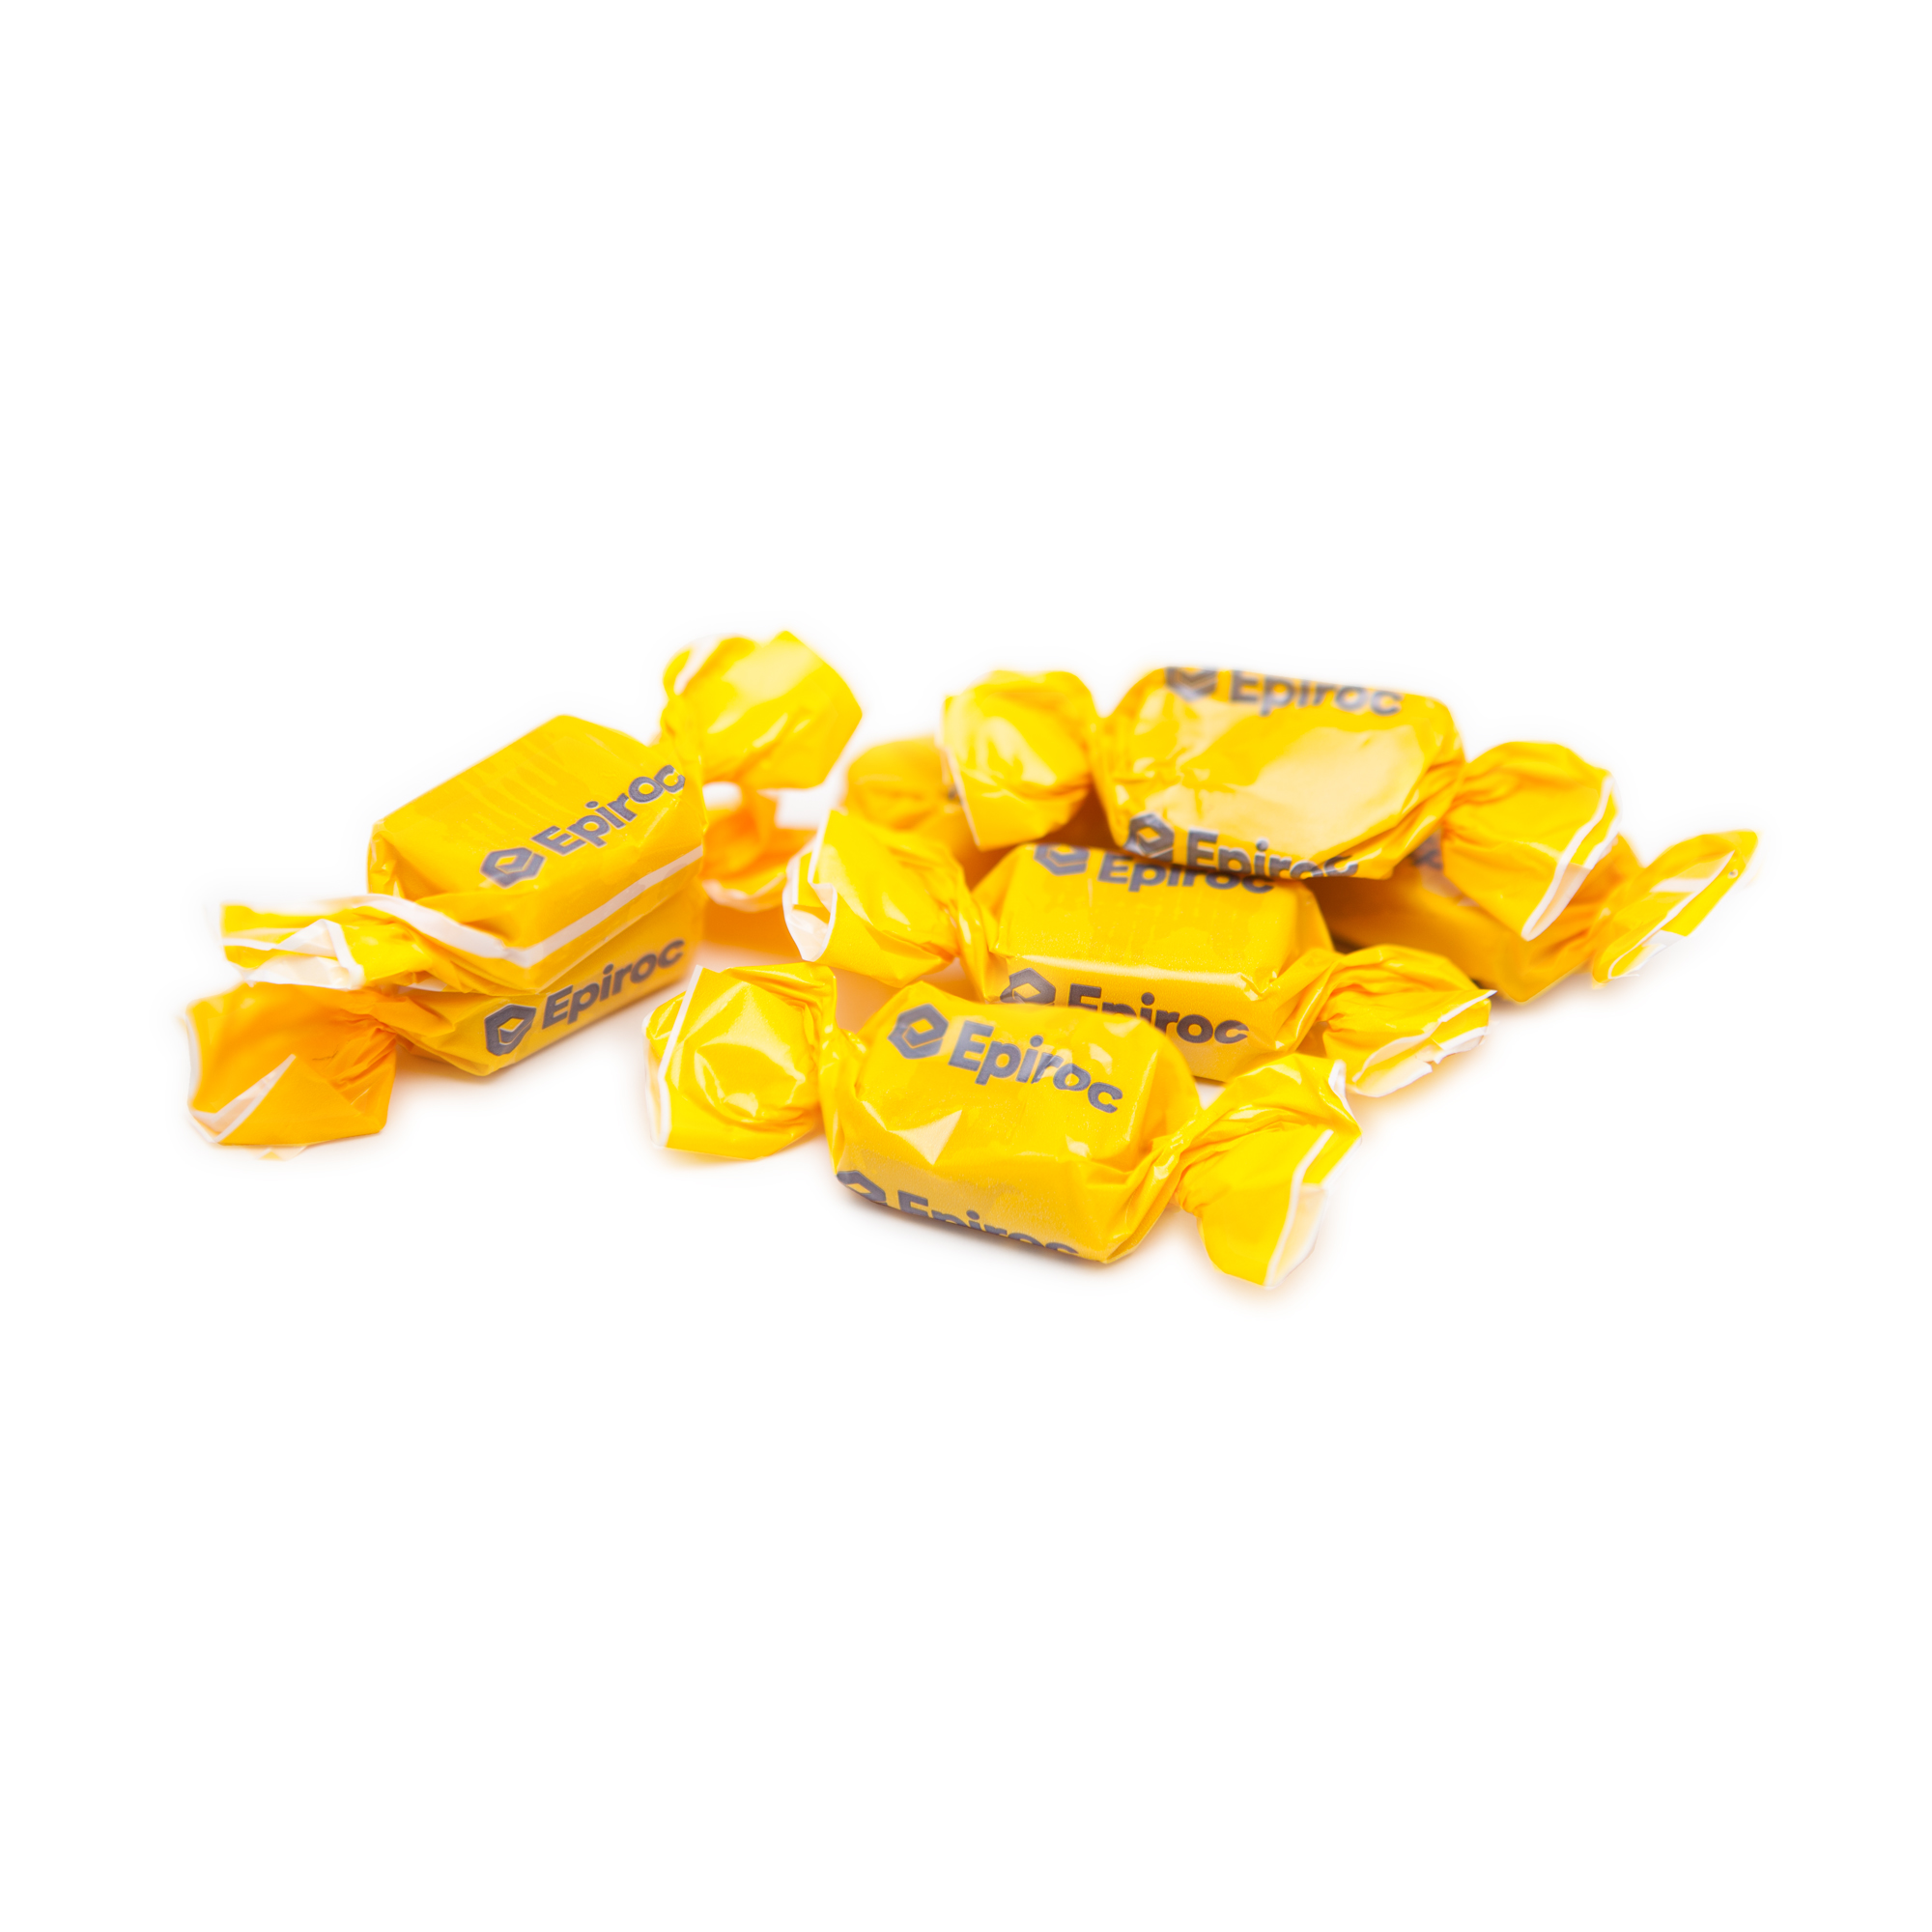 Tasty toffee wrapped in Epiroc branded wrapping paper. Ideal at events and in reception areas.